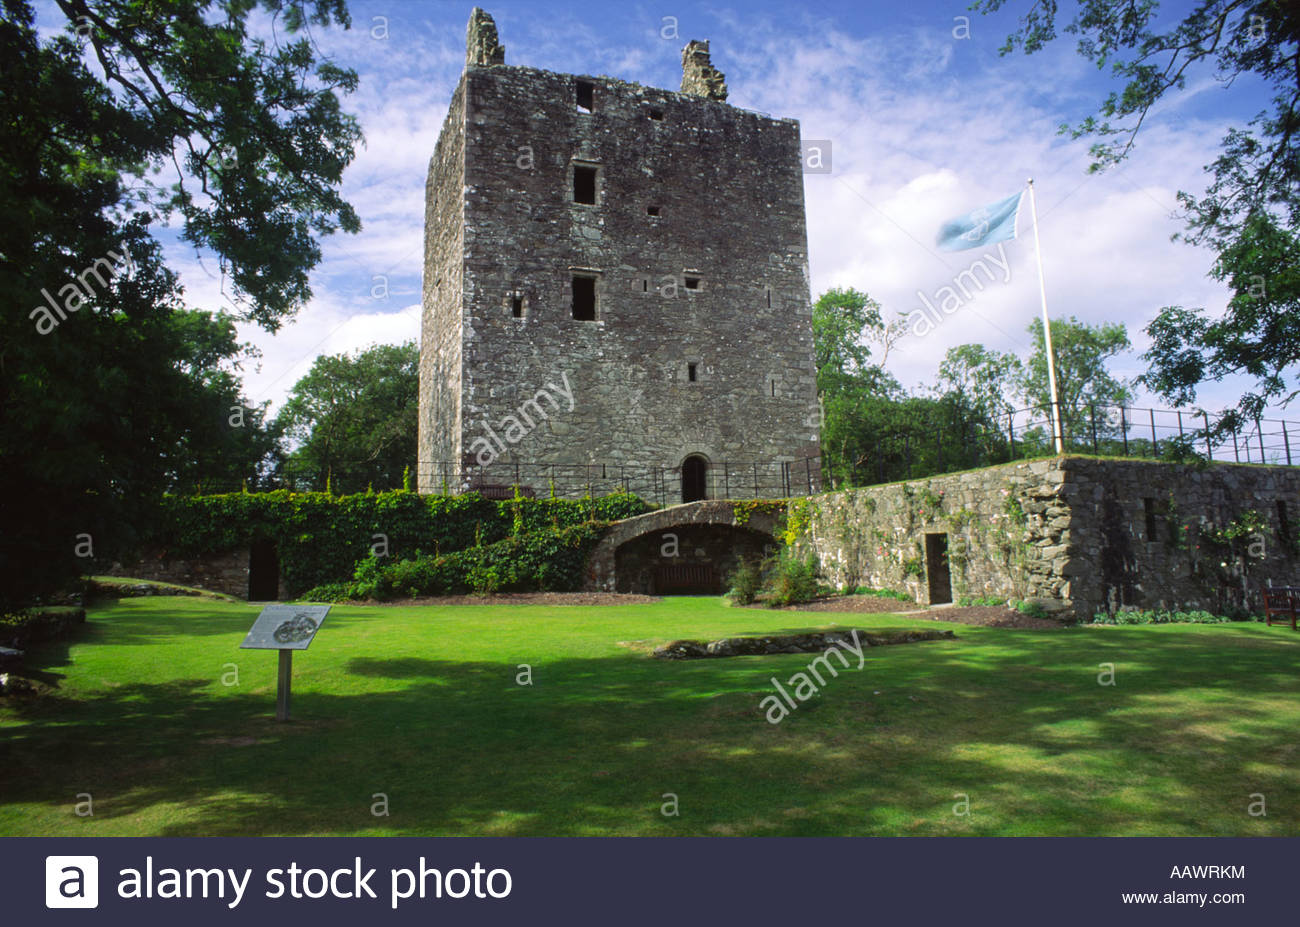 Cardoness Castle The Borders and the Southwest, Scottish castle Cardoness Castle 15th centuay tower house on the ...